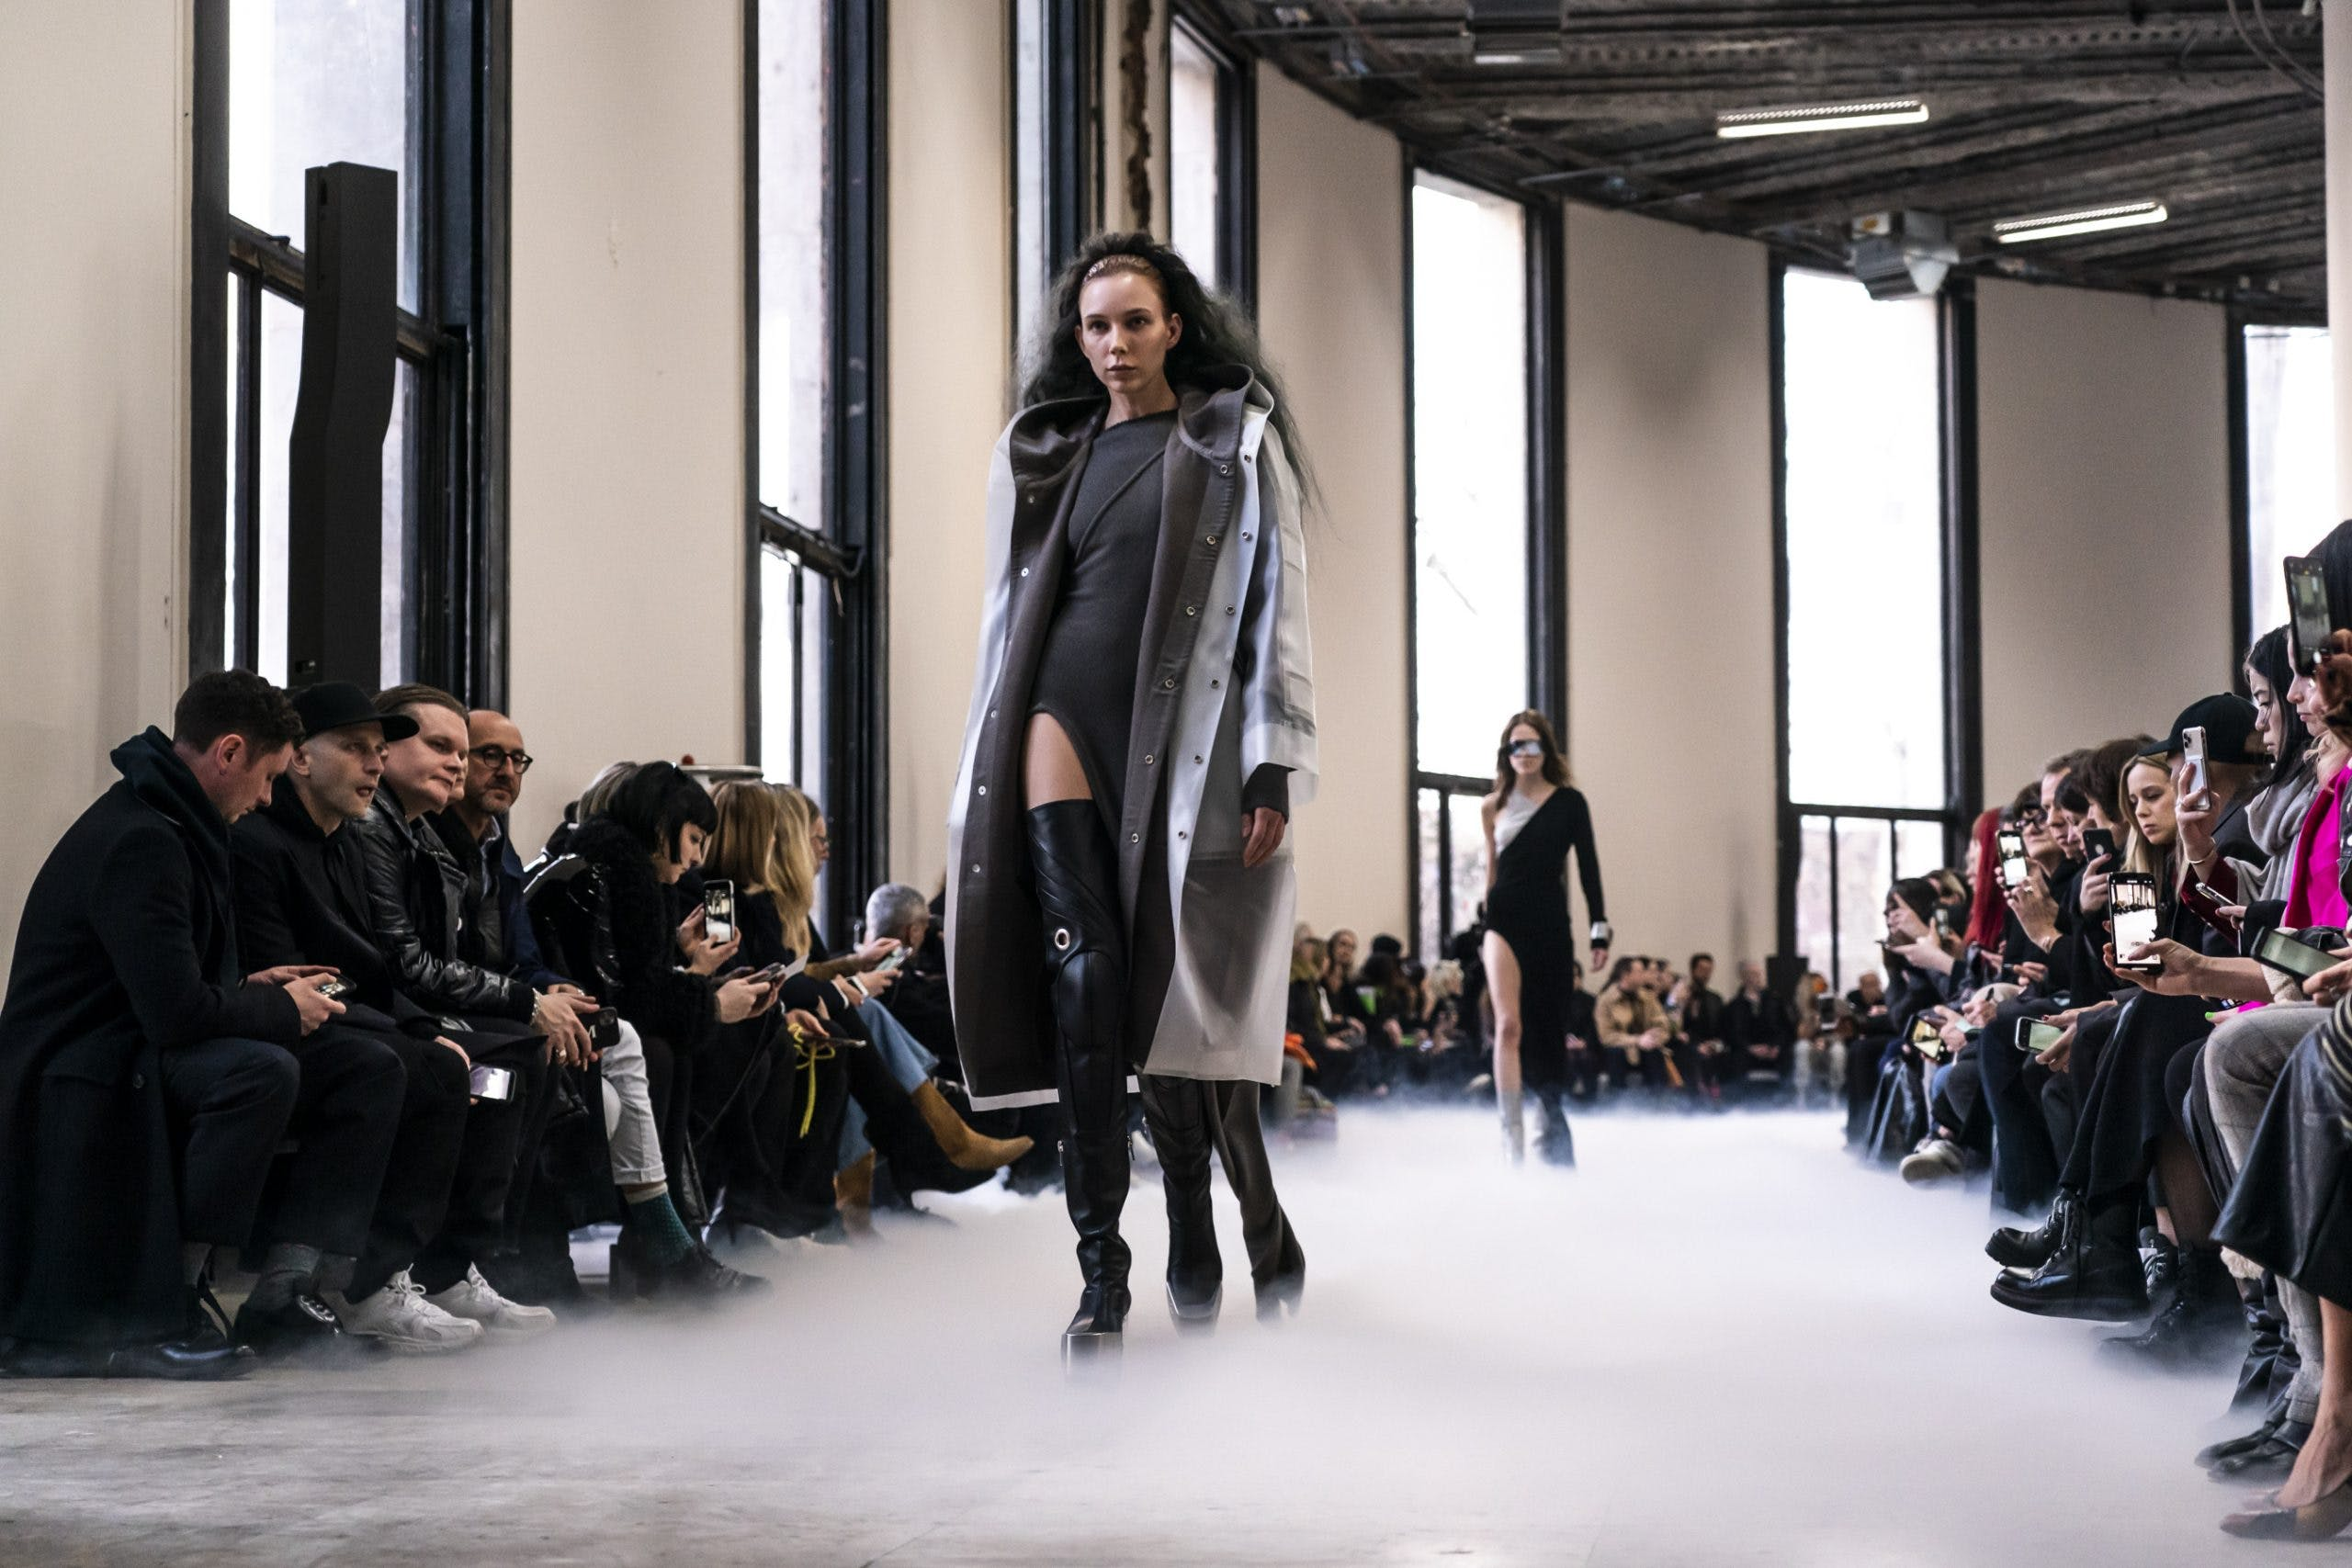 Rick Owens Runway Transparent Hooded Rain Coat Hooded Oversized Coat in Dust Slit Dress in Grey Thigh High Kiss Grill Boots in Black Leather Womens FW20 Performa